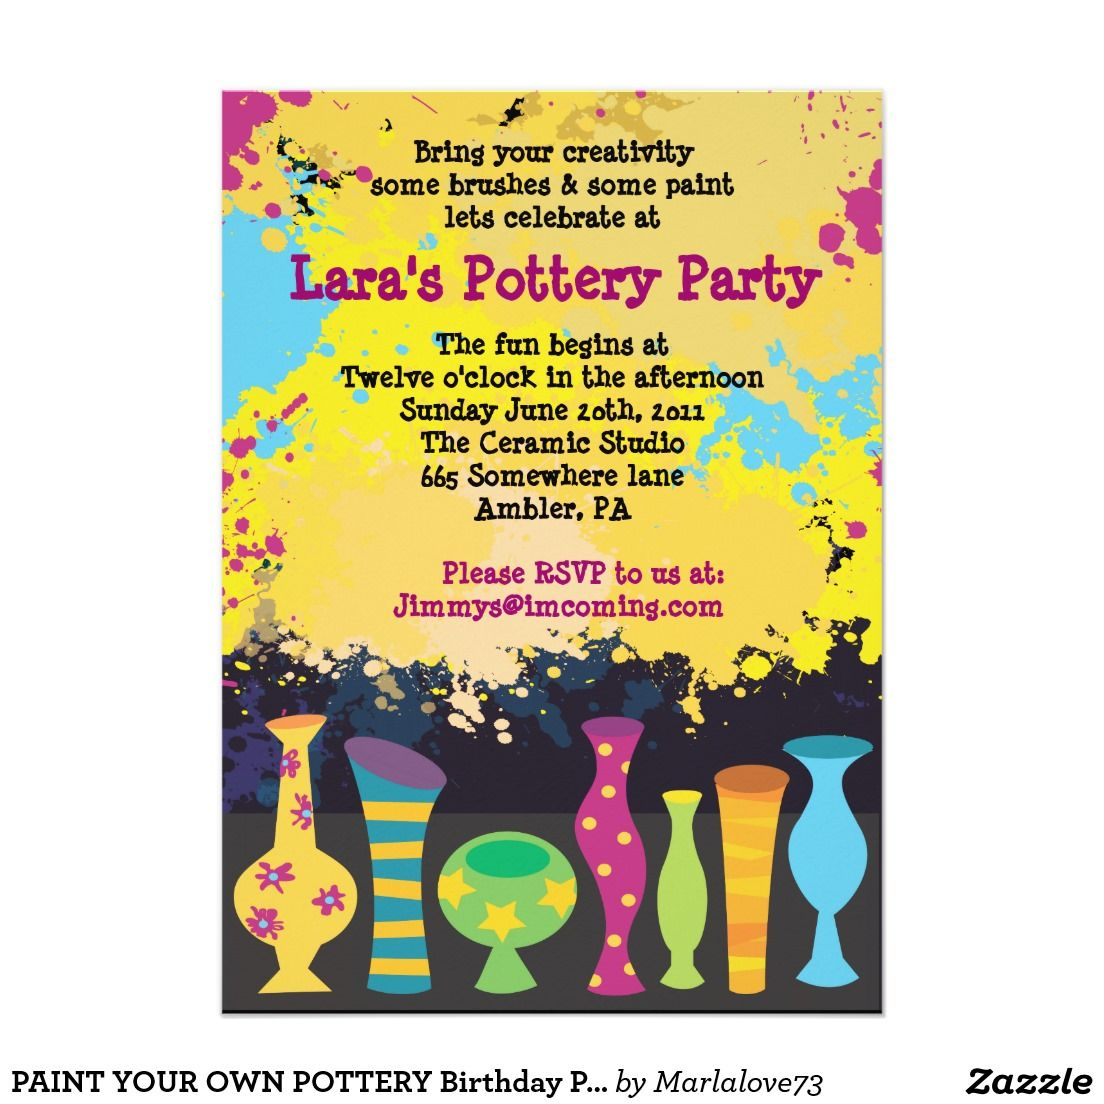 PAINT YOUR OWN POTTERY Birthday Party Invitation | Party invitations ...